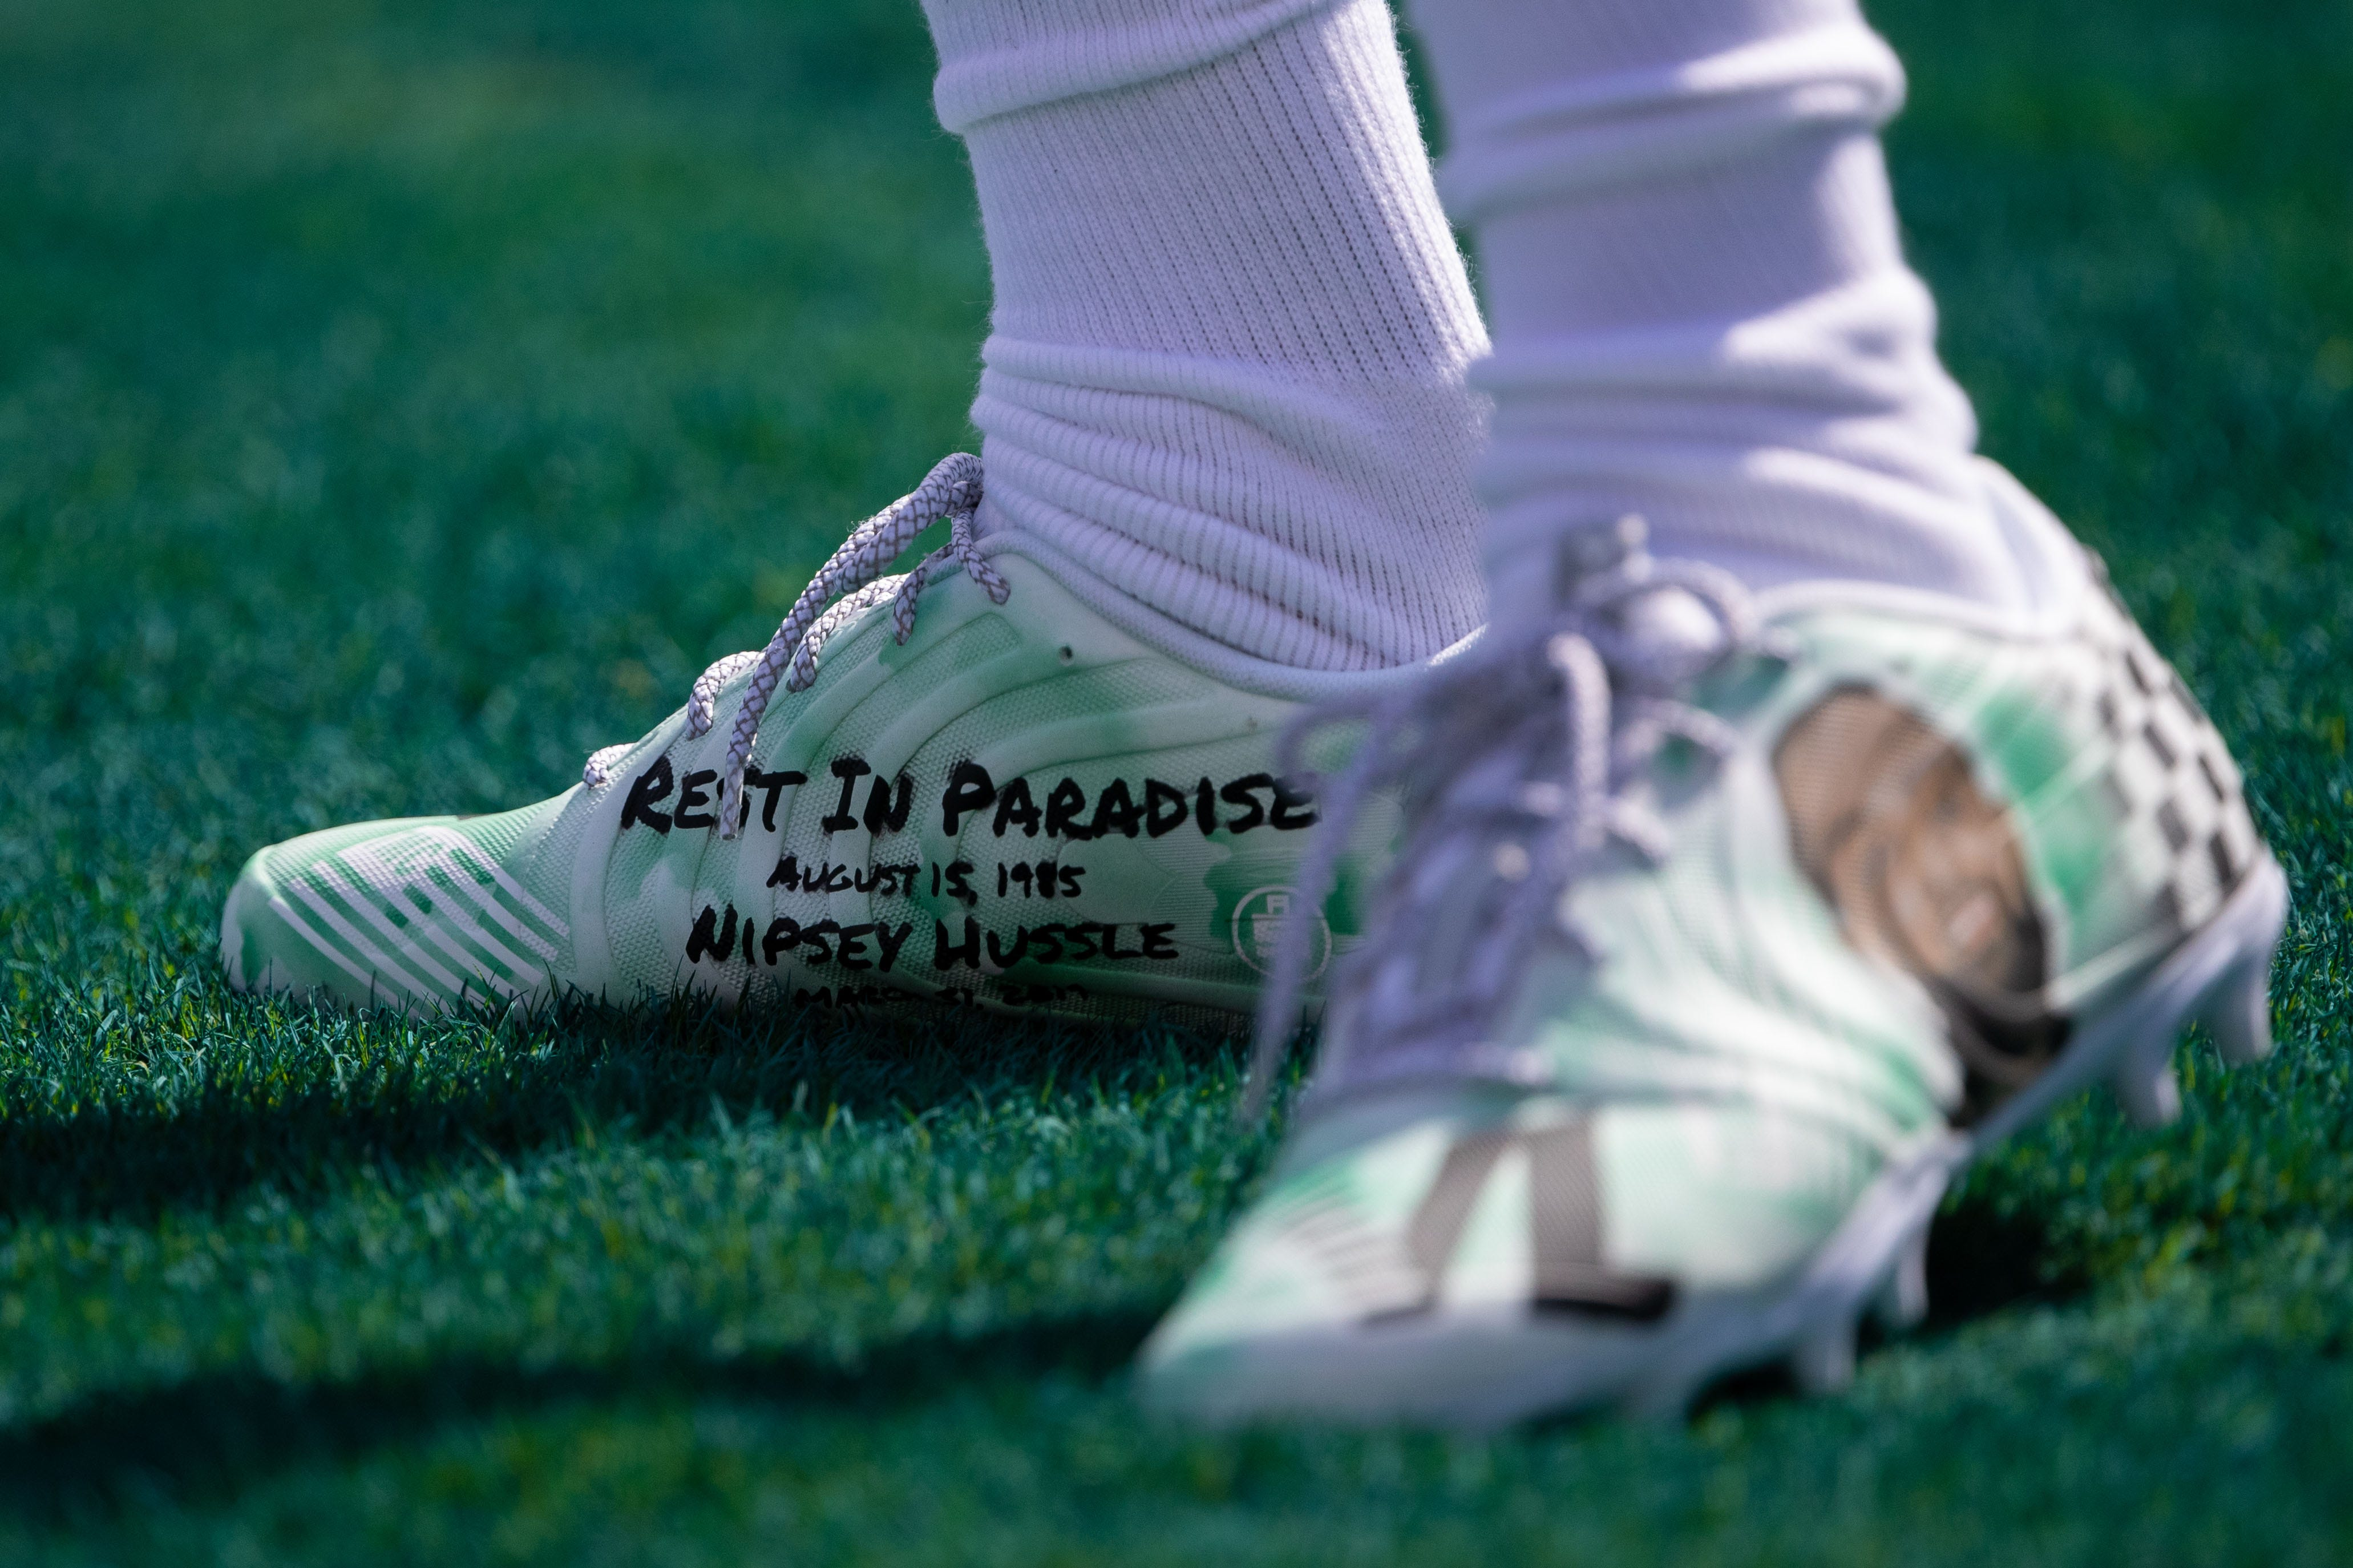 Eagles WR DeSean Jackson to auction cleats to honor late rapper Nipsey Hussle